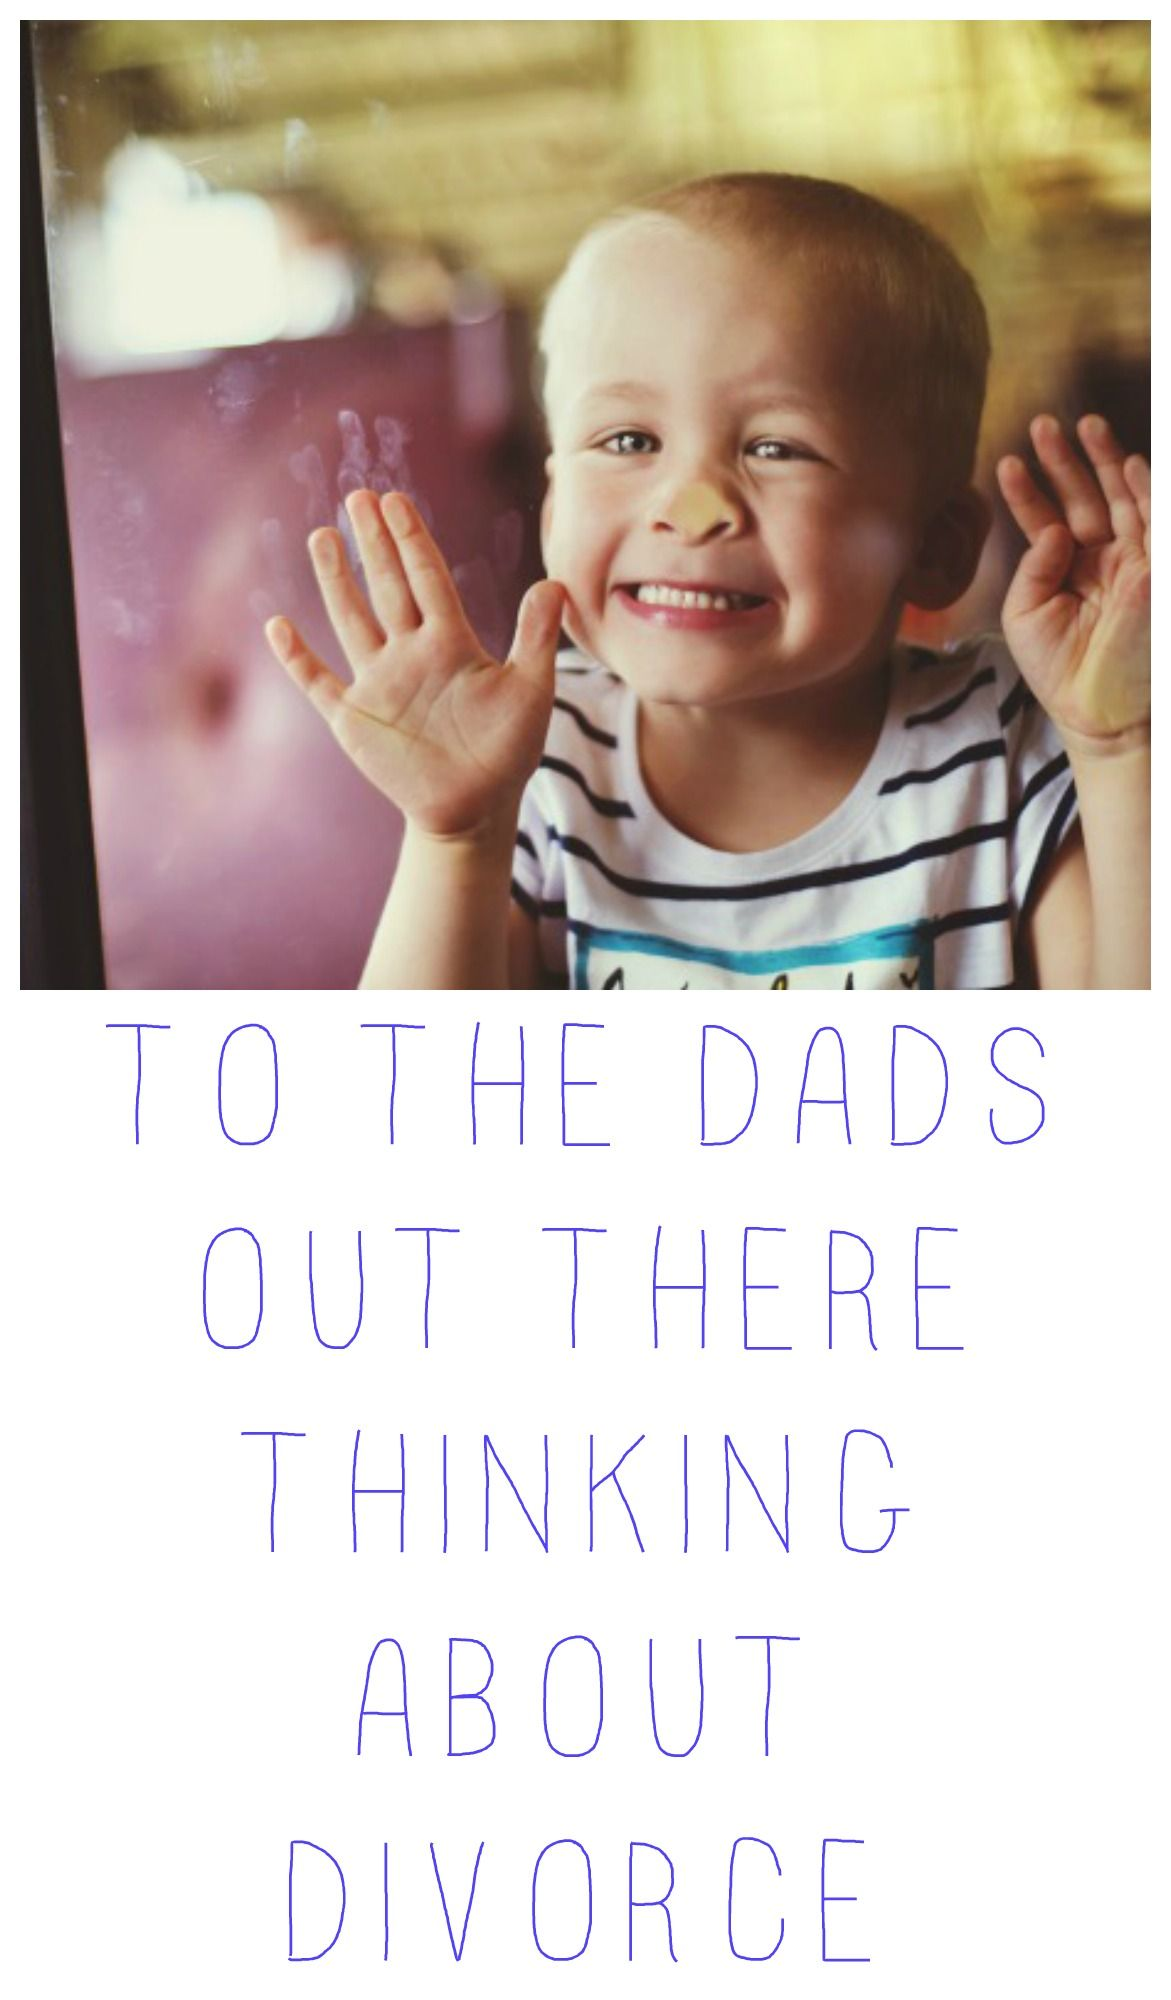 Advice for divorced dads